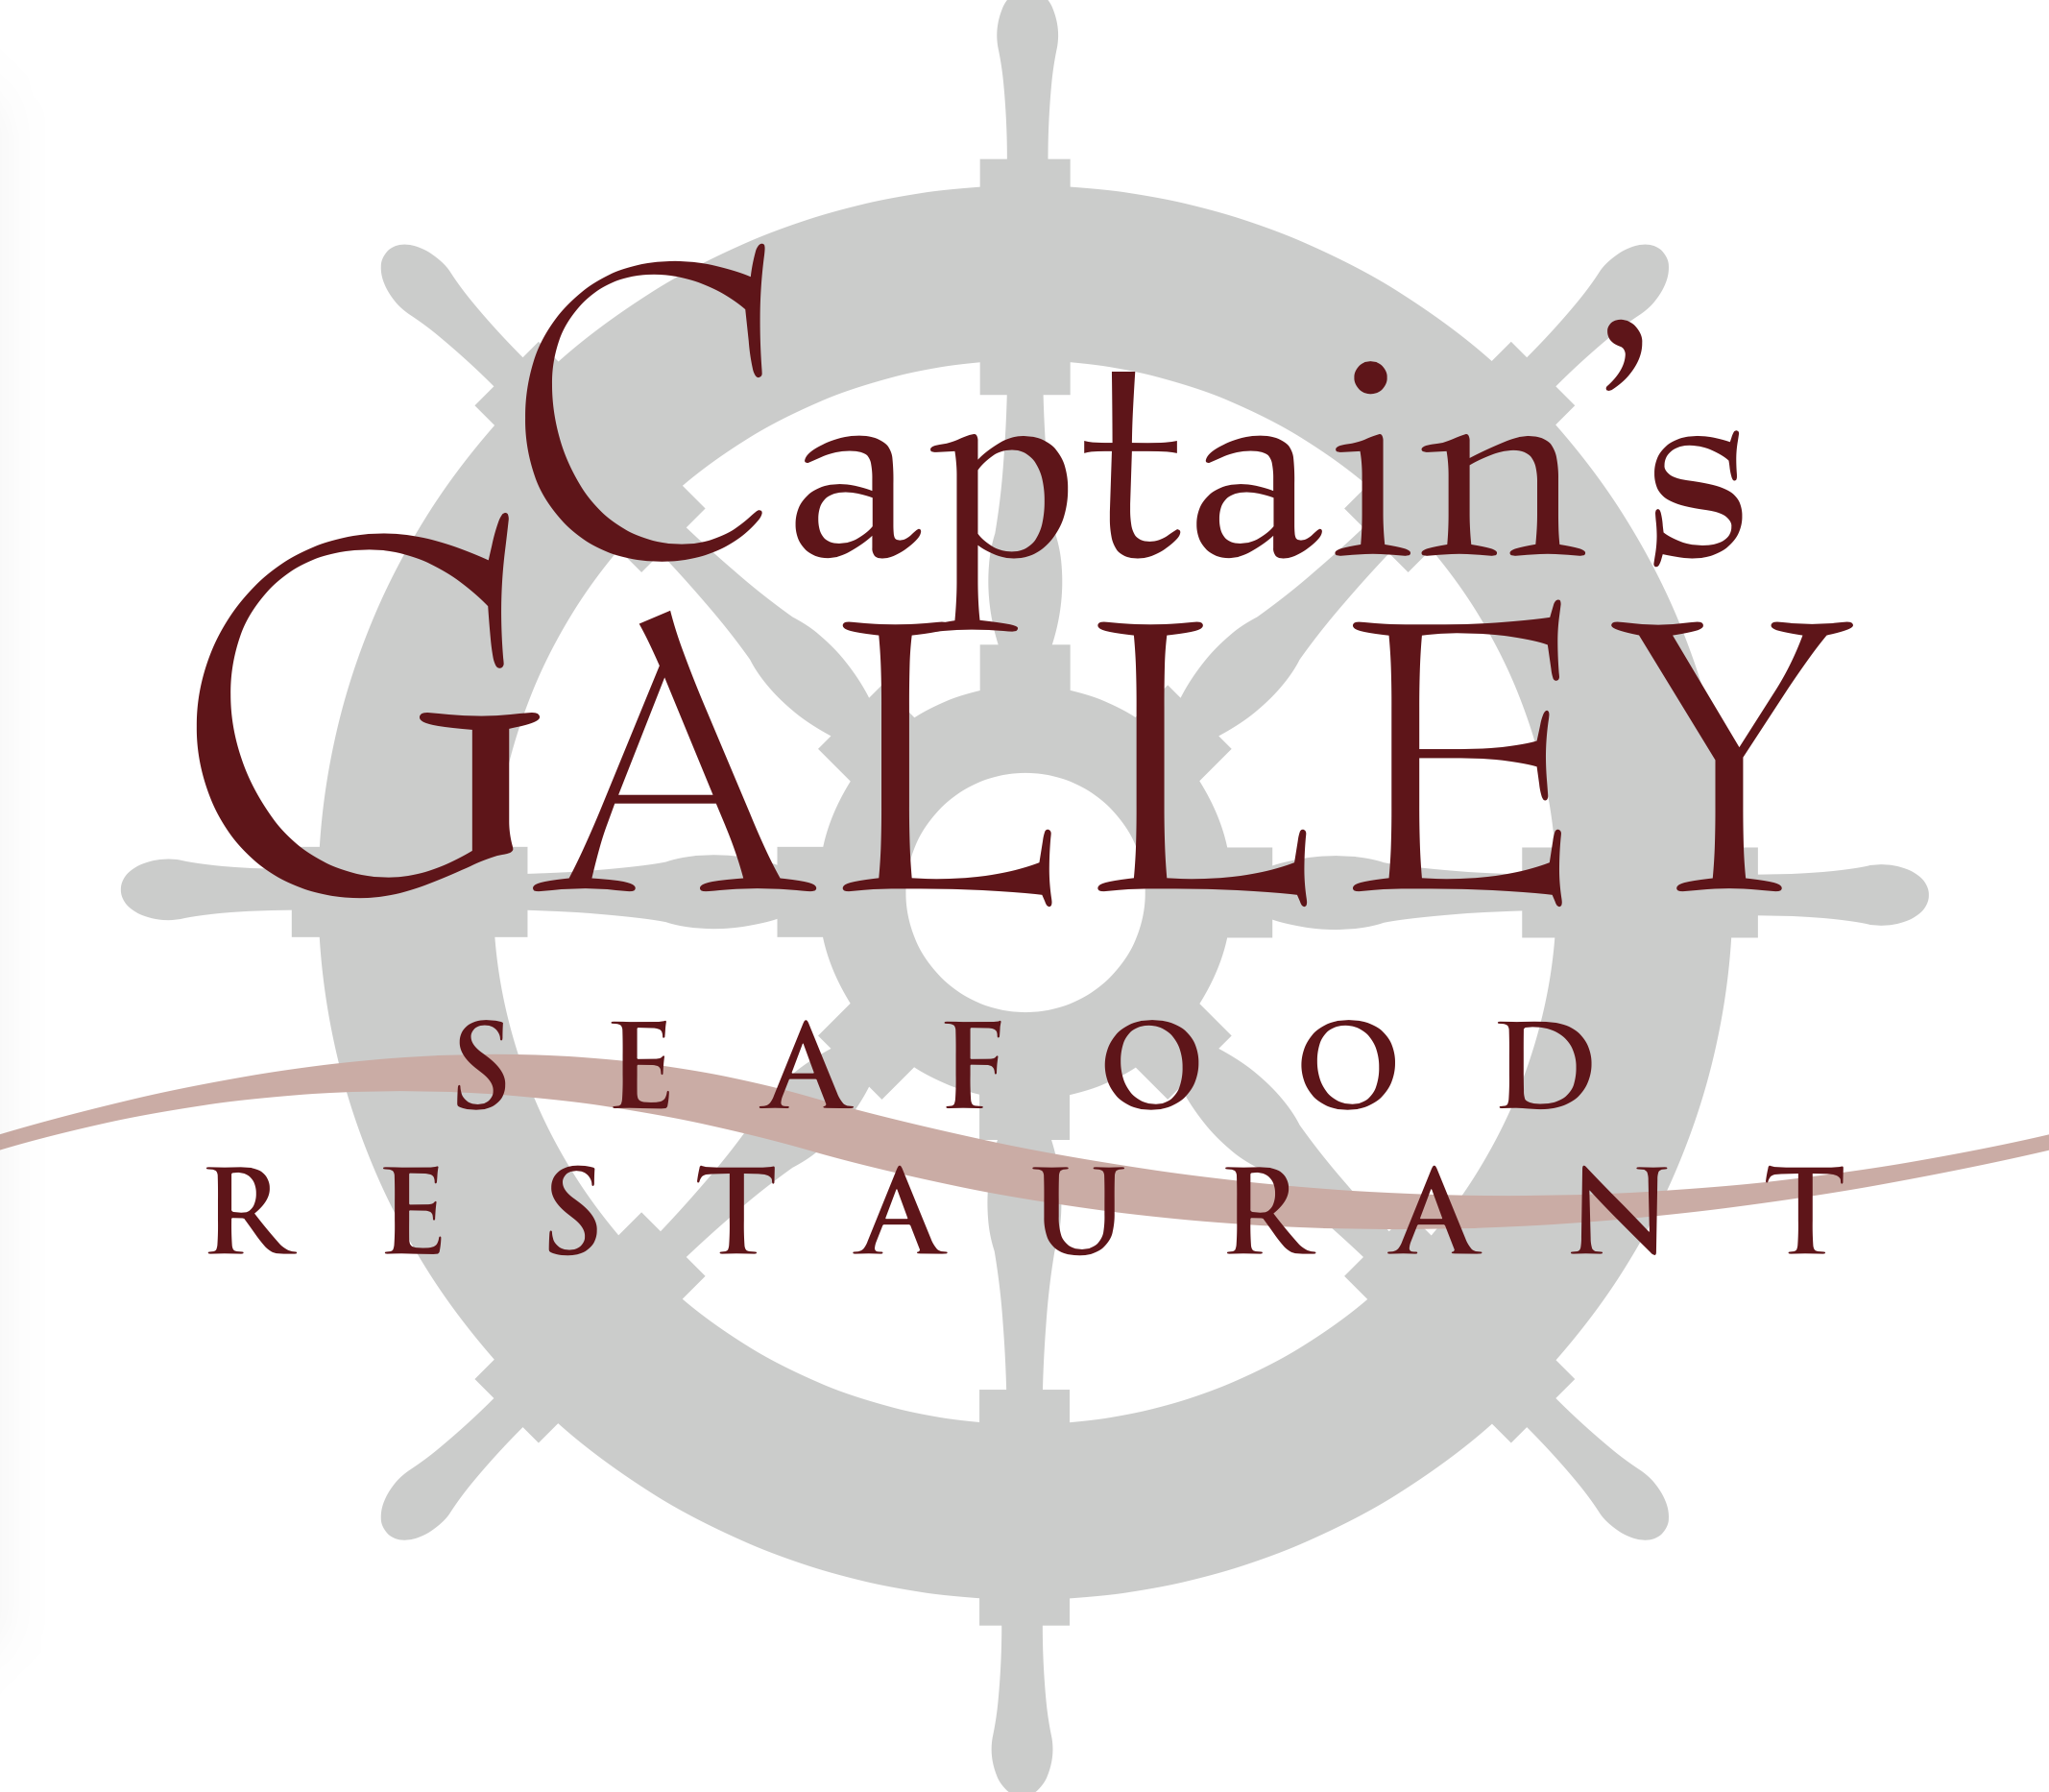 VISIT CAPTAIN'S GALLEY